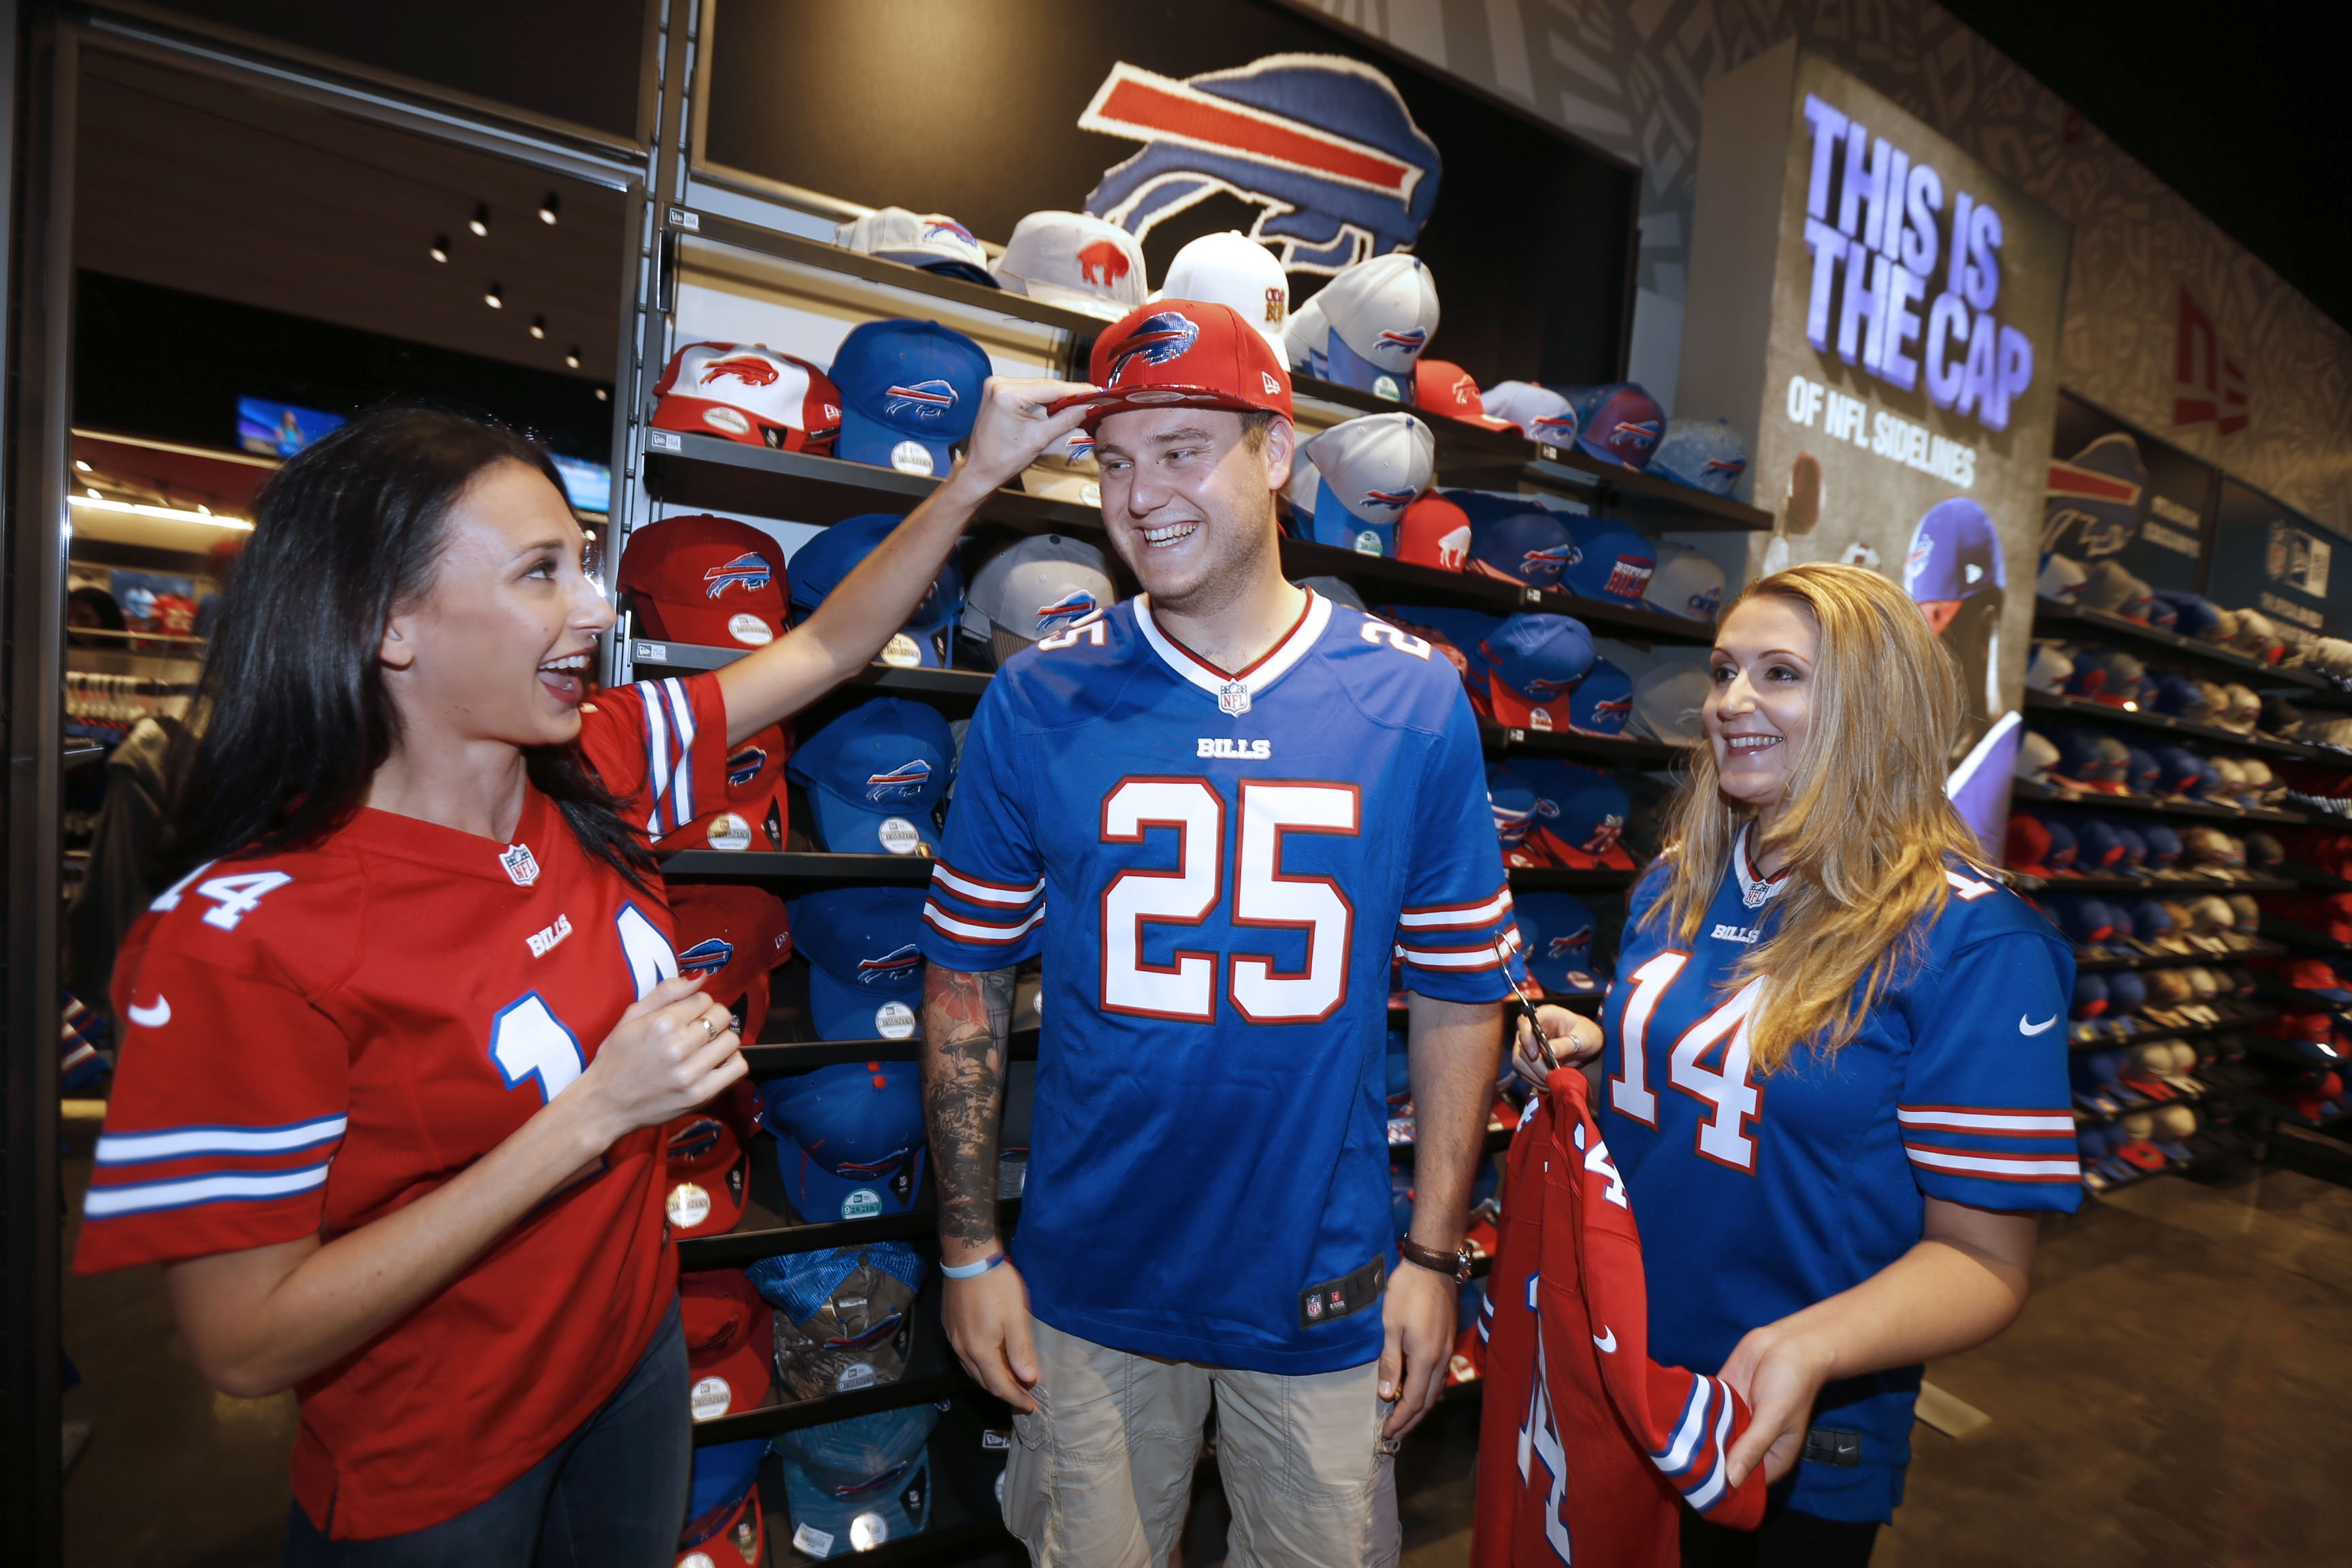 Inside the Bills Store at New Era Field where the Buffalo Bills play are, Matt Wild and his wife Claire Wild, both dressed in blue, from Helston, Cornwall, England and their hostess Jenna Scavone, in red, of Orchard Park on  Tuesday, Sept. 13, 2016.  (Robert Kirkham/Buffalo News)